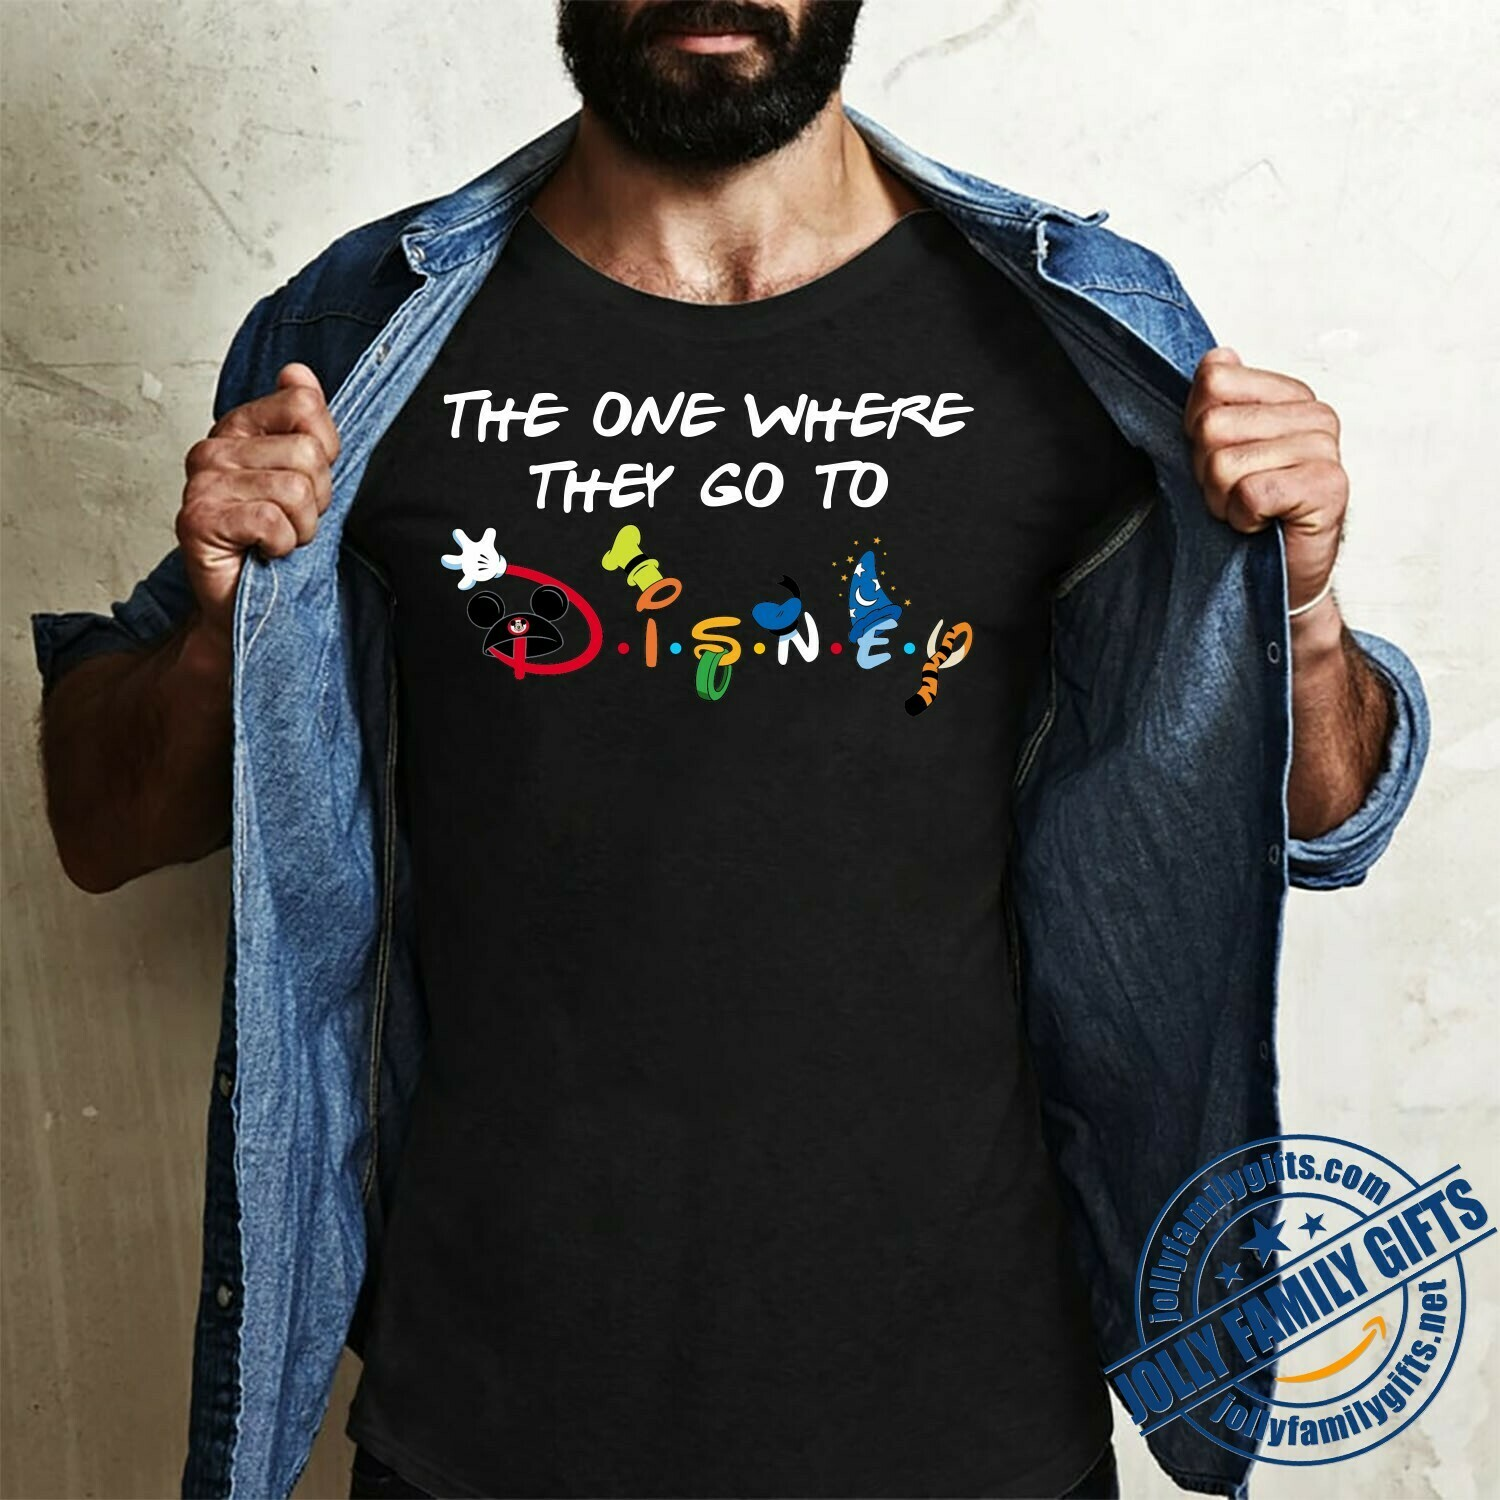 The one where they go to Disney Friends Inspired Disney World Family Trip Group Matching Friends  Unisex T-Shirt Hoodie Sweatshirt Sweater Plus Size for Ladies Women Men Kids Youth Gifts Tee Jolly